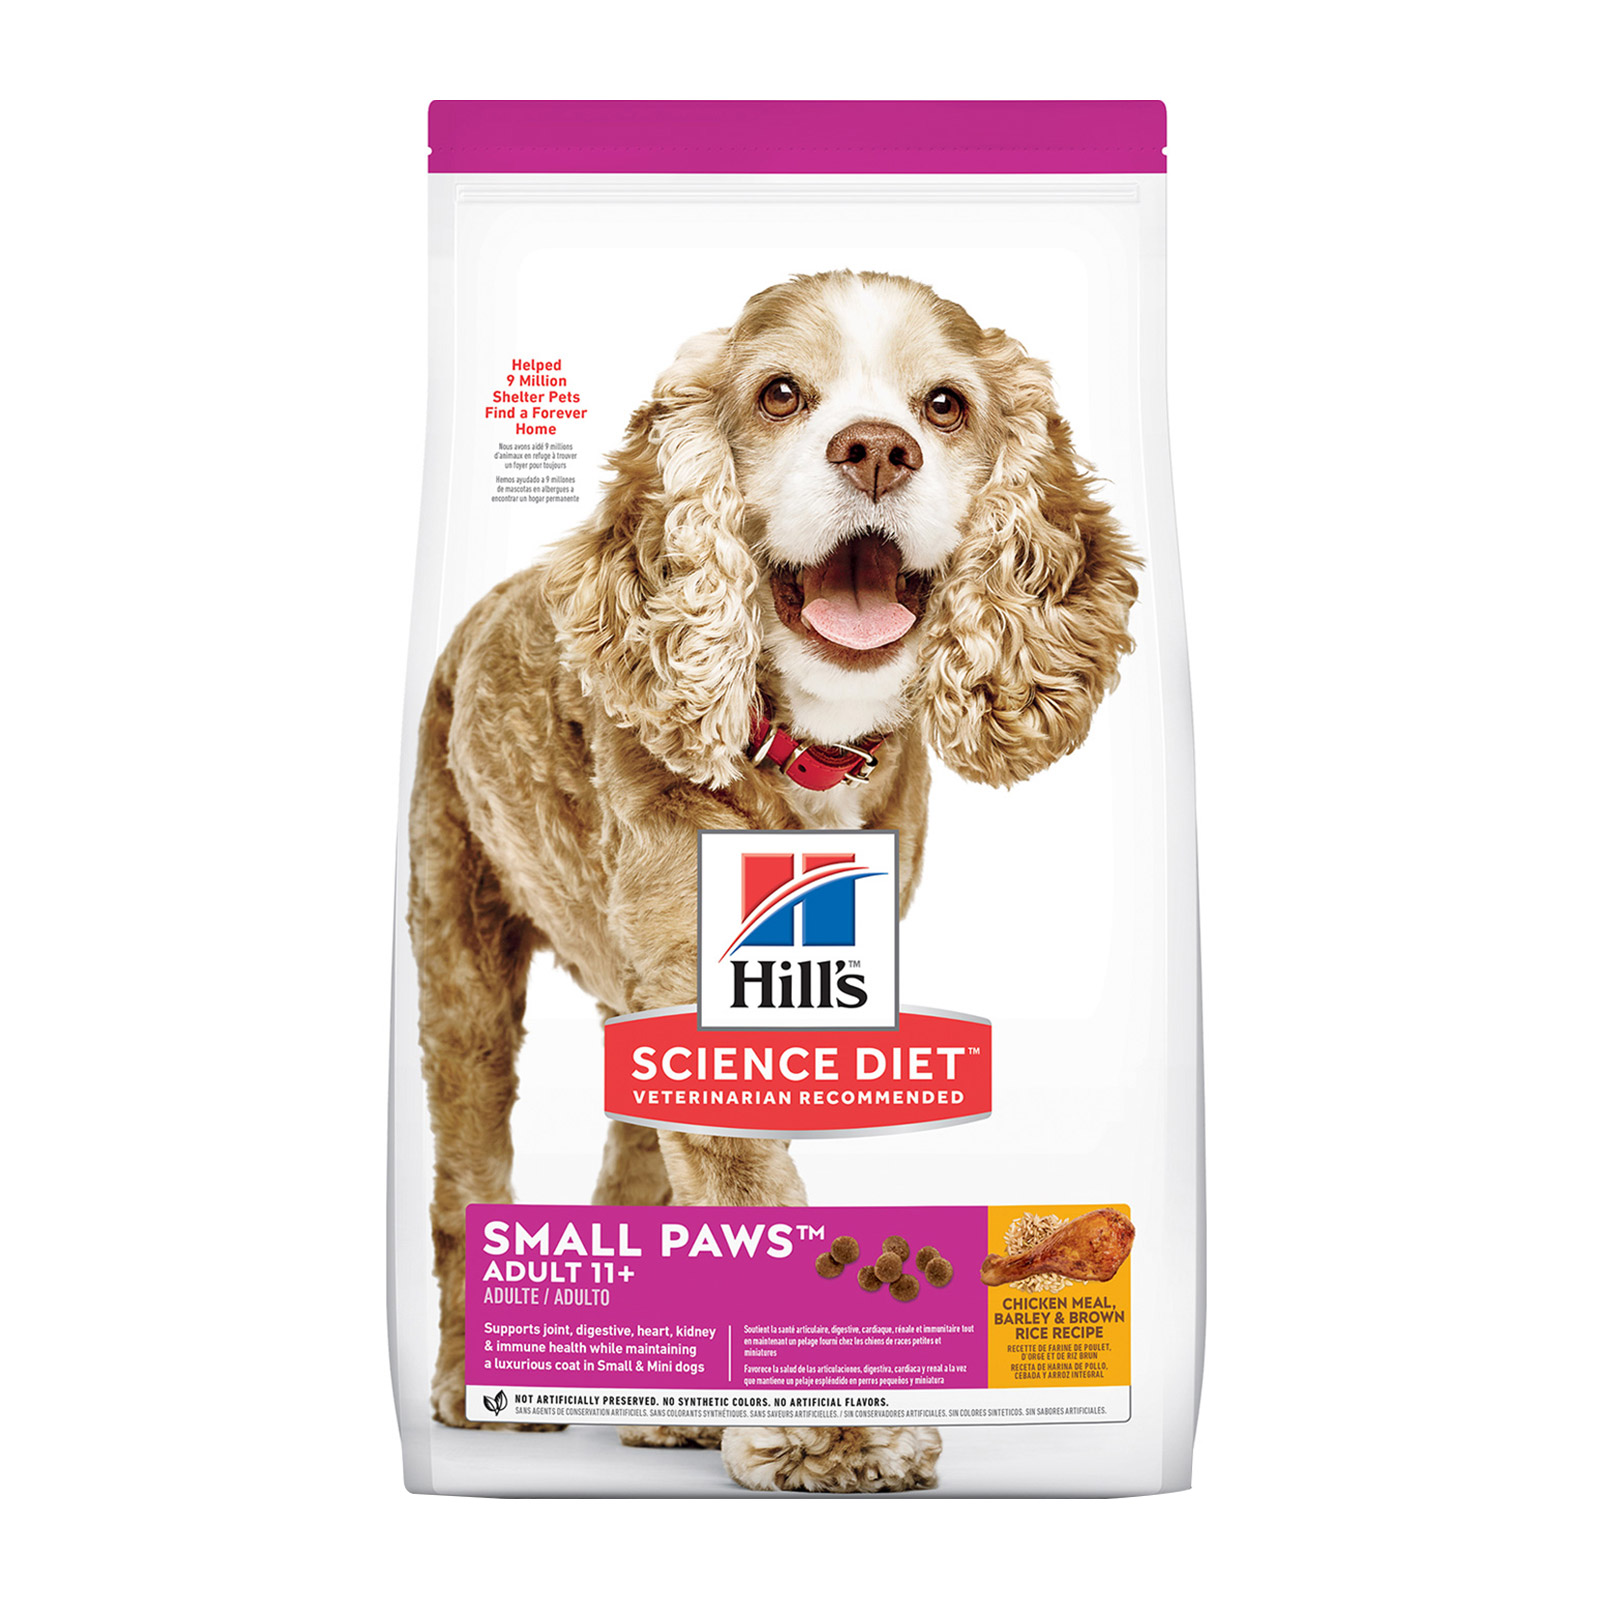 Hill's Science Diet Adult 11+ Small Paws Chicken, Barley & Rice Dry Dog Food   2.04 Kgs